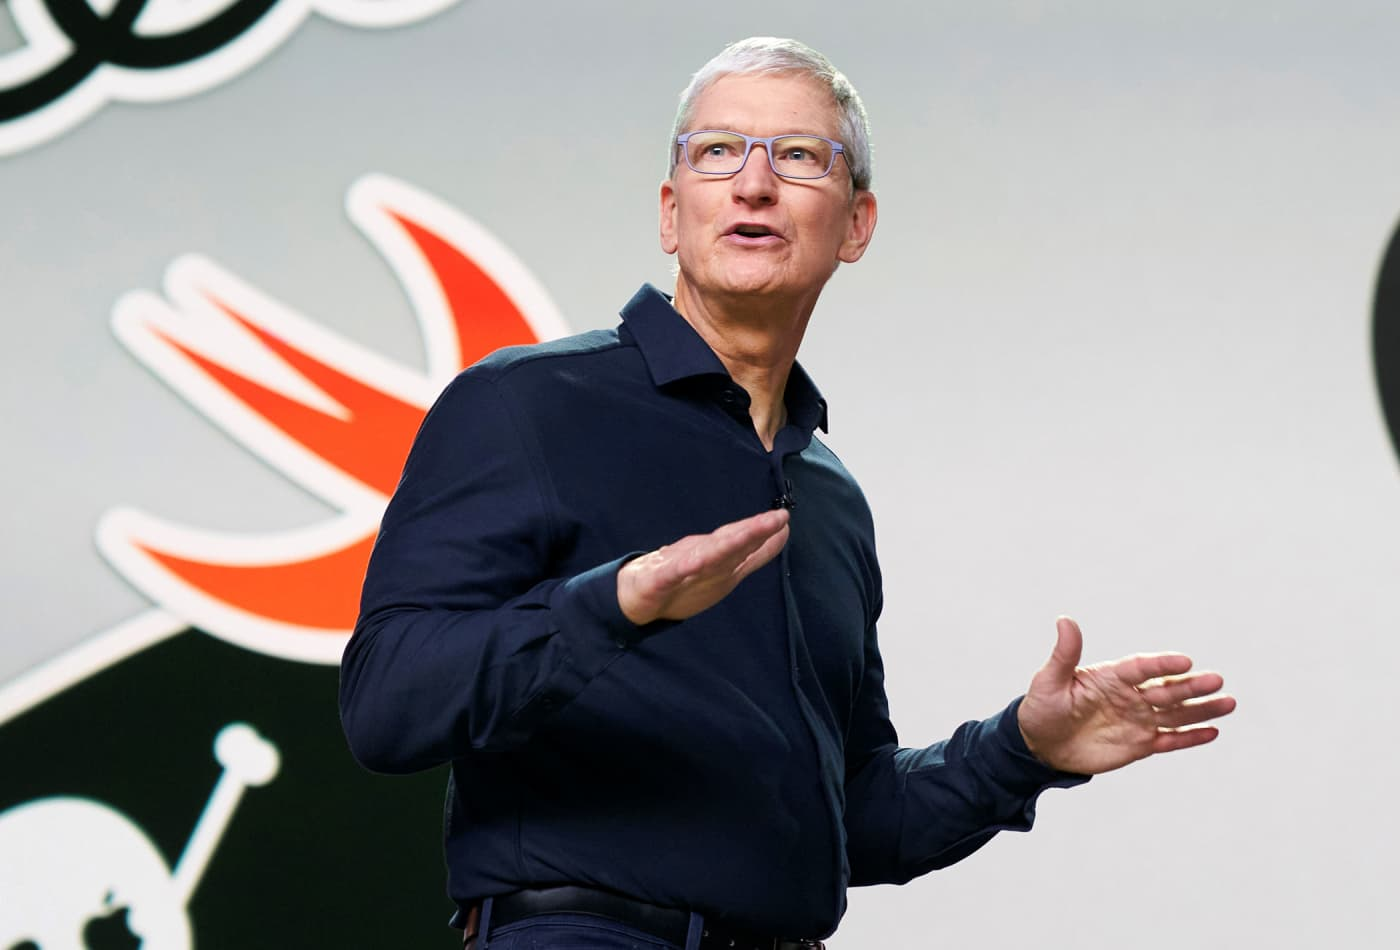 Apple will let iPhone users change default mail and browser apps, addressing antitrust concerns